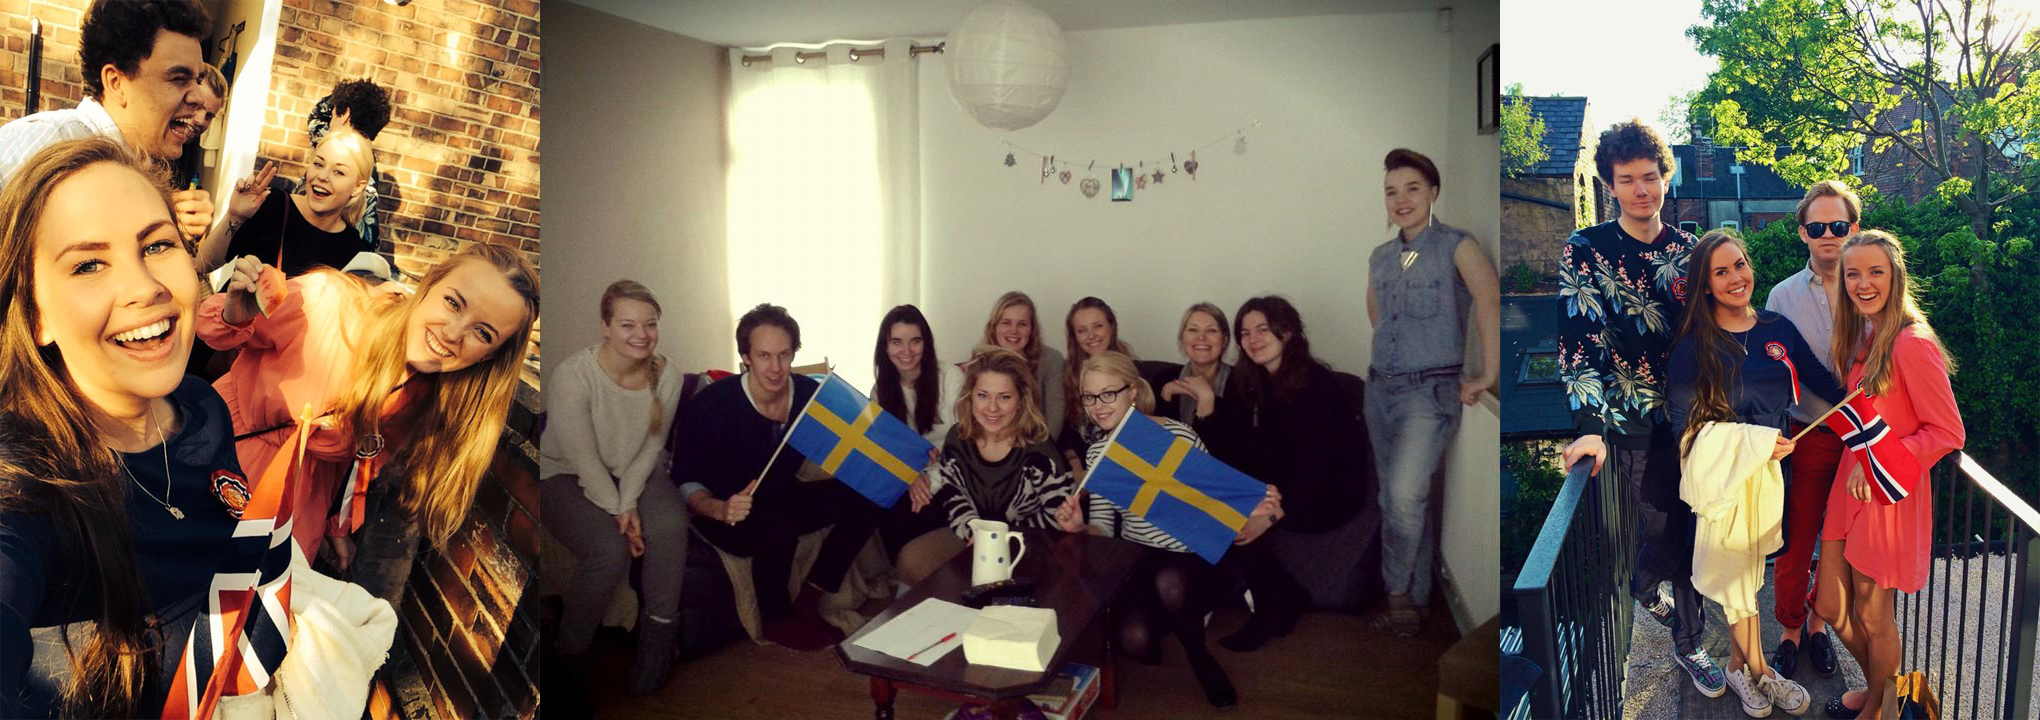 The Nordic Society, celebrating Nordic culture together